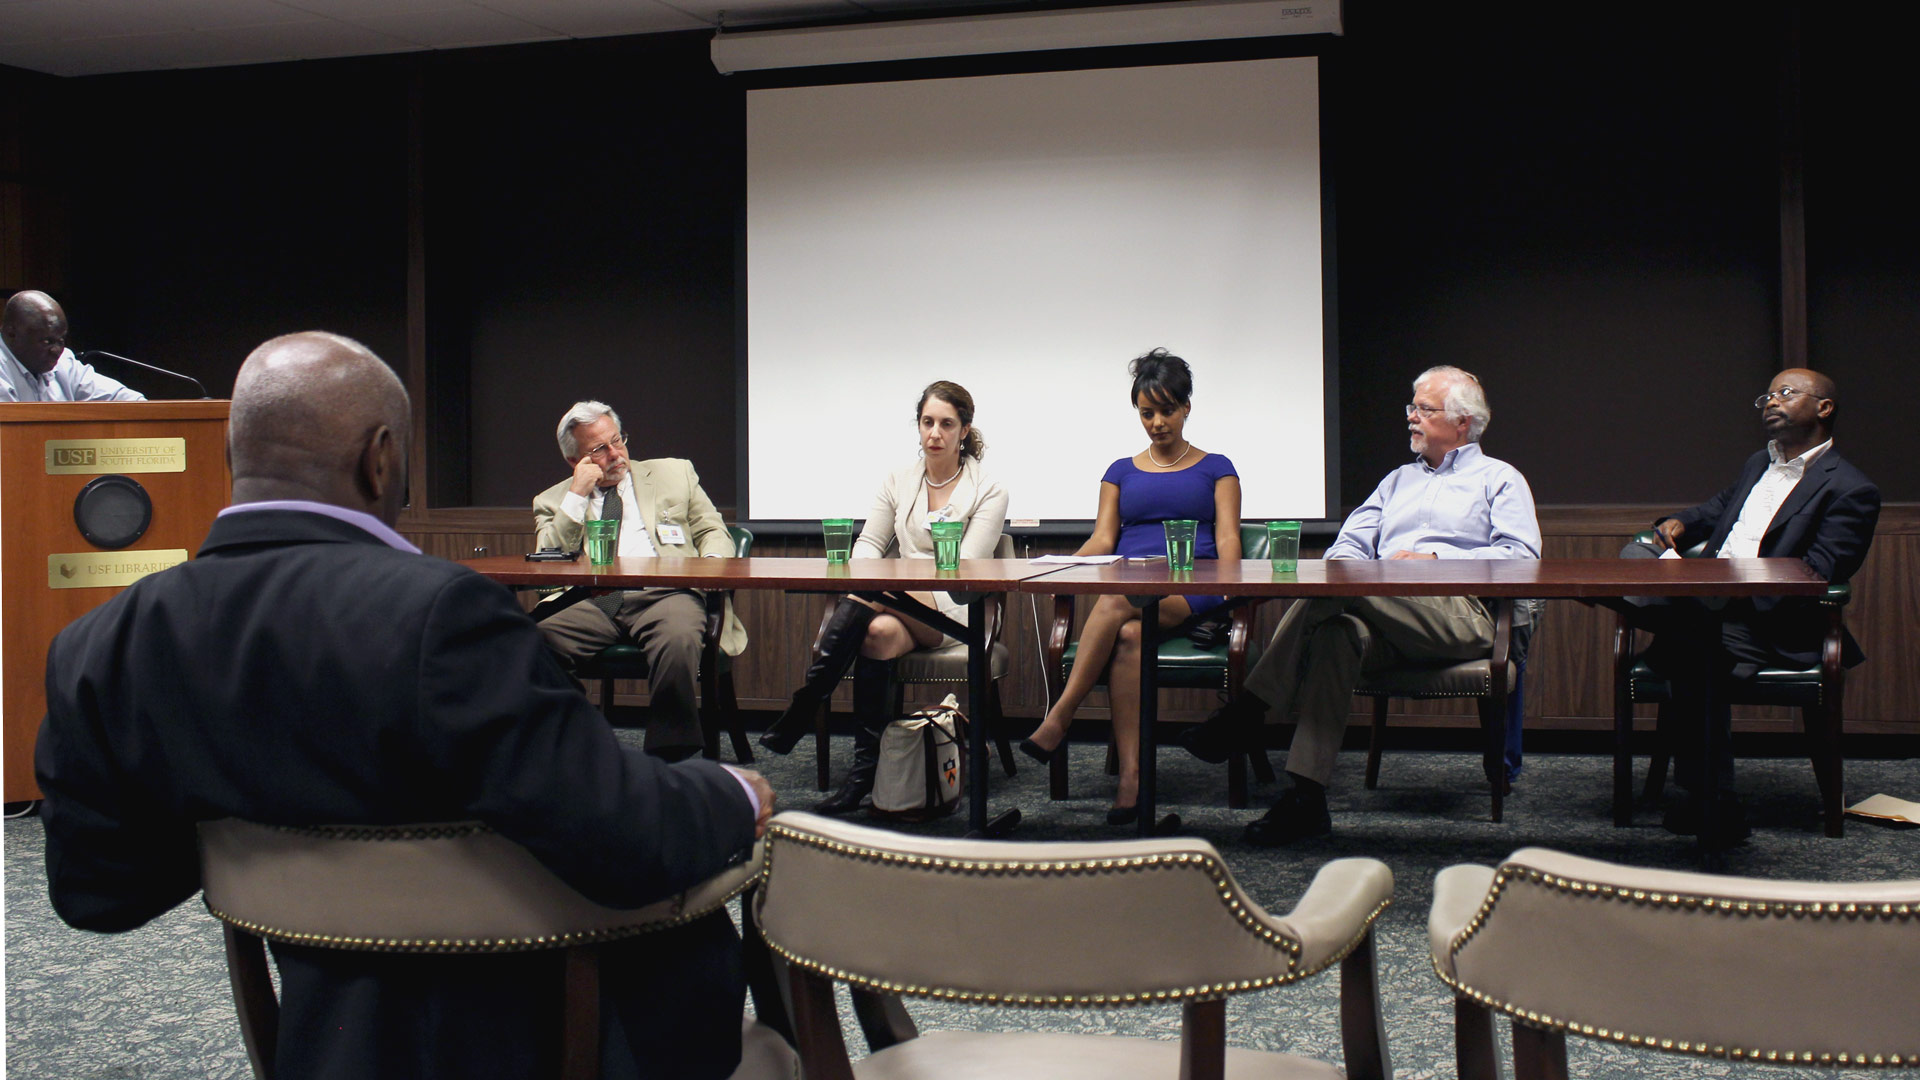 The Ebola Outbreak in West Africa: Panel discussion at the University of South Florida Tampa Library